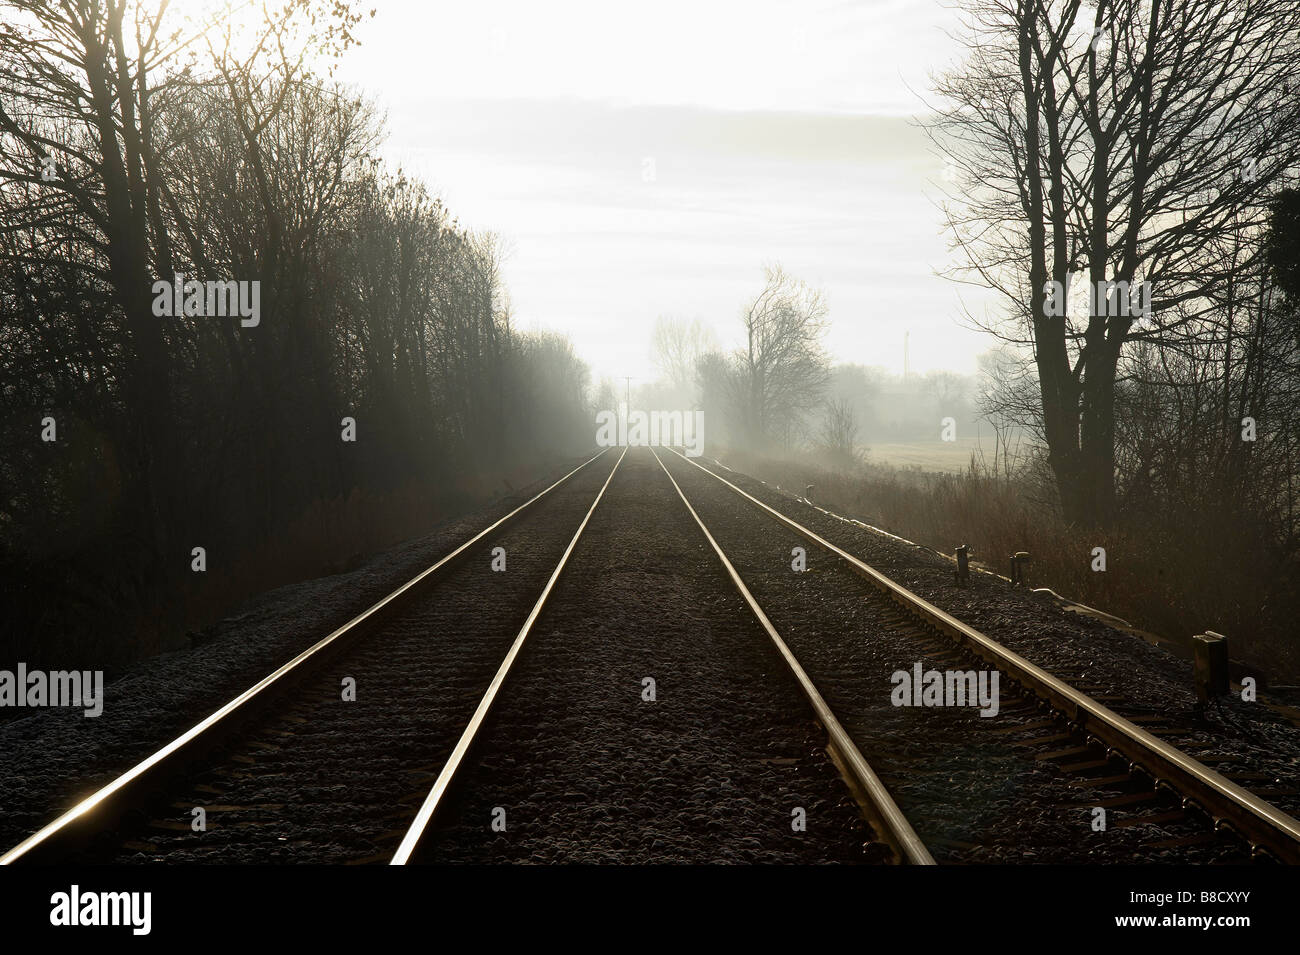 Converging railway lines, in dawn light, Womersley, Northern England - Stock Image